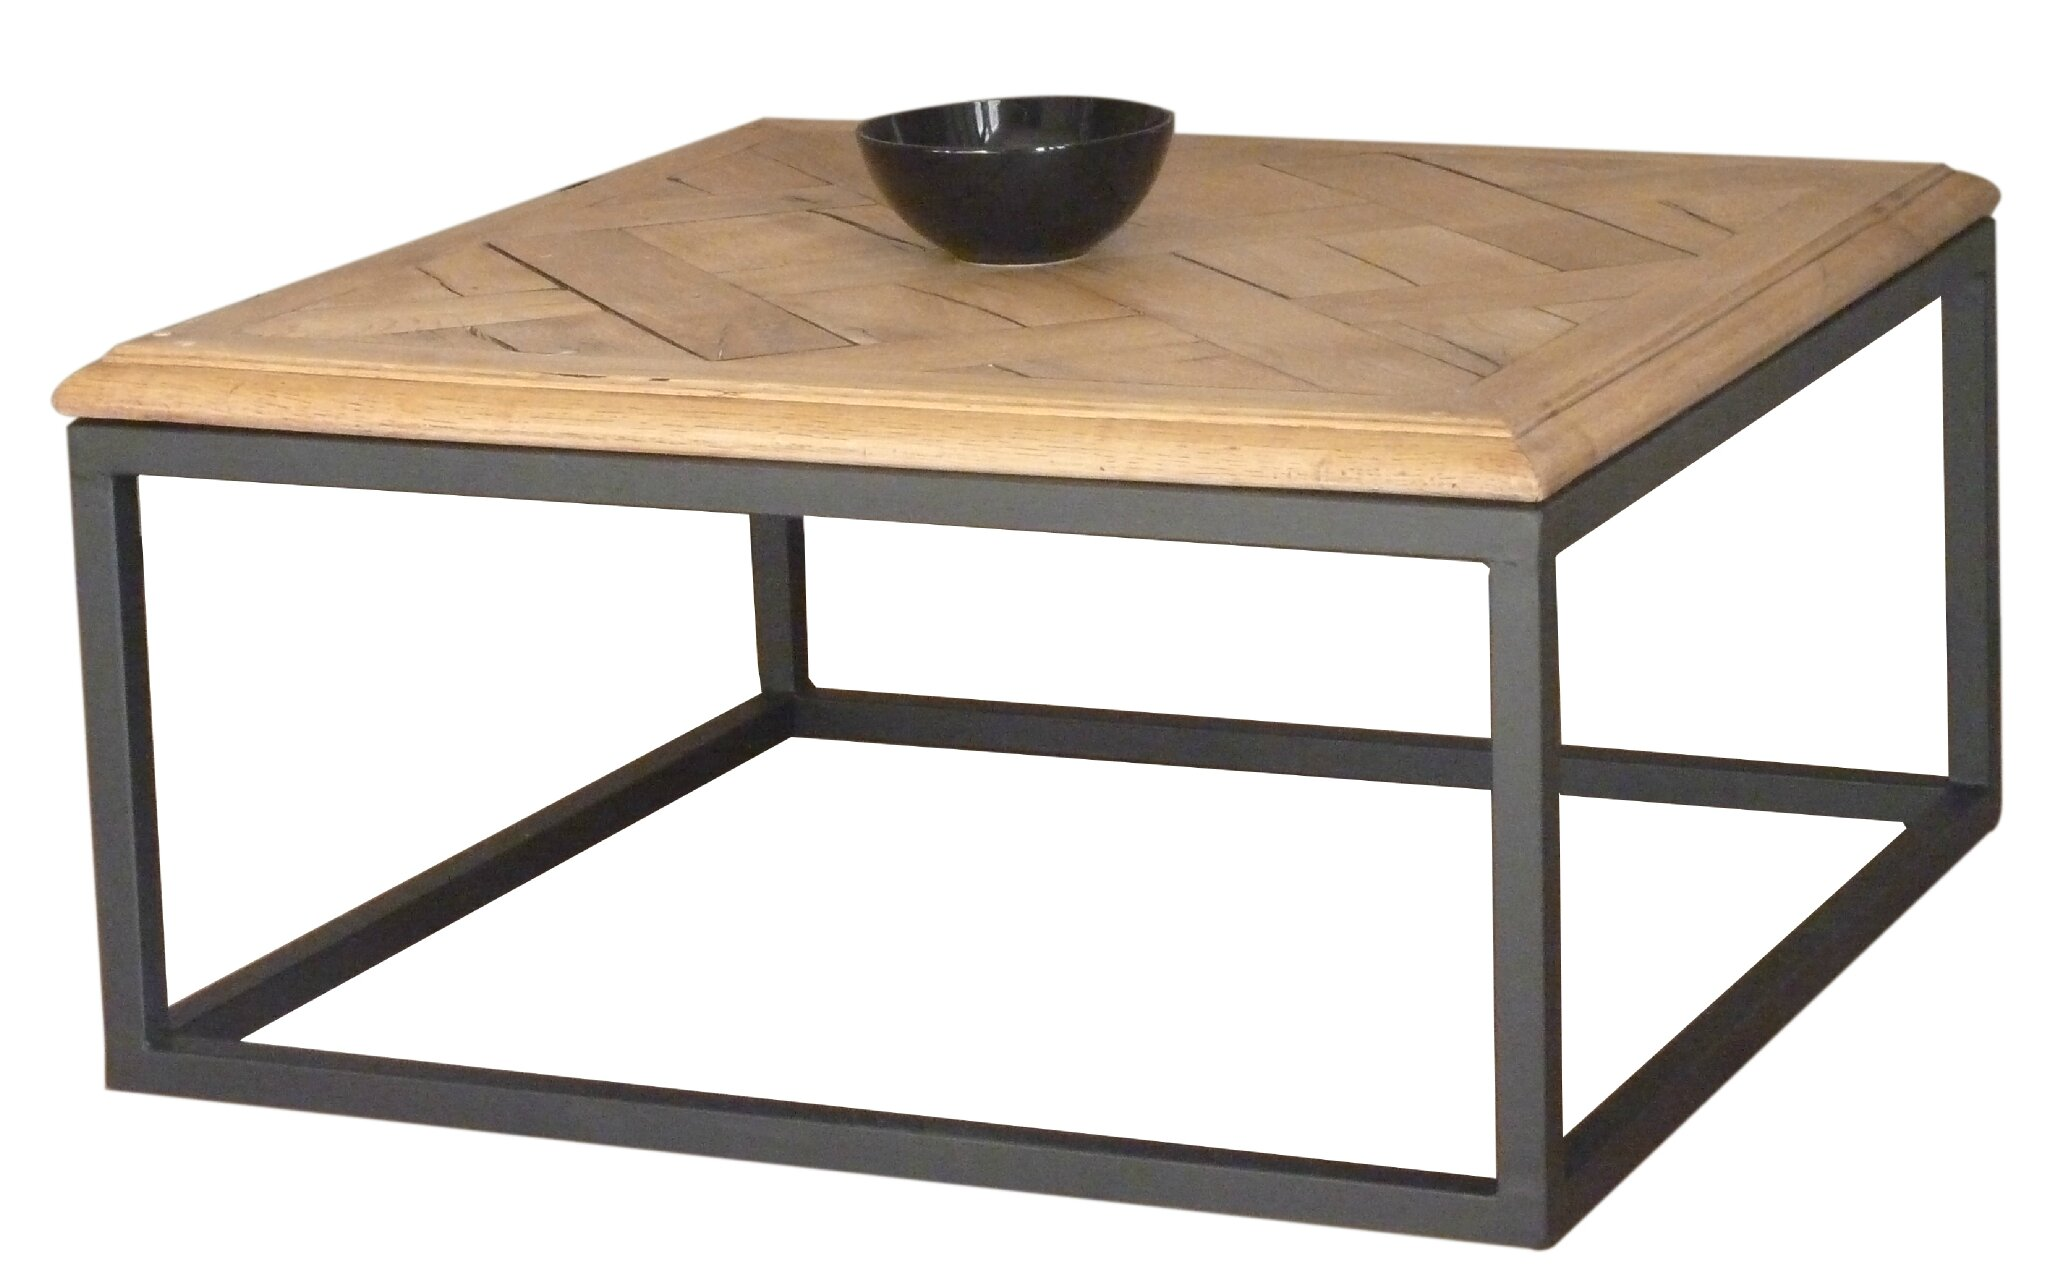 D co table jardin pas chere 11 saint denis table basse ikea relevable t - Table jardin pas chere ...